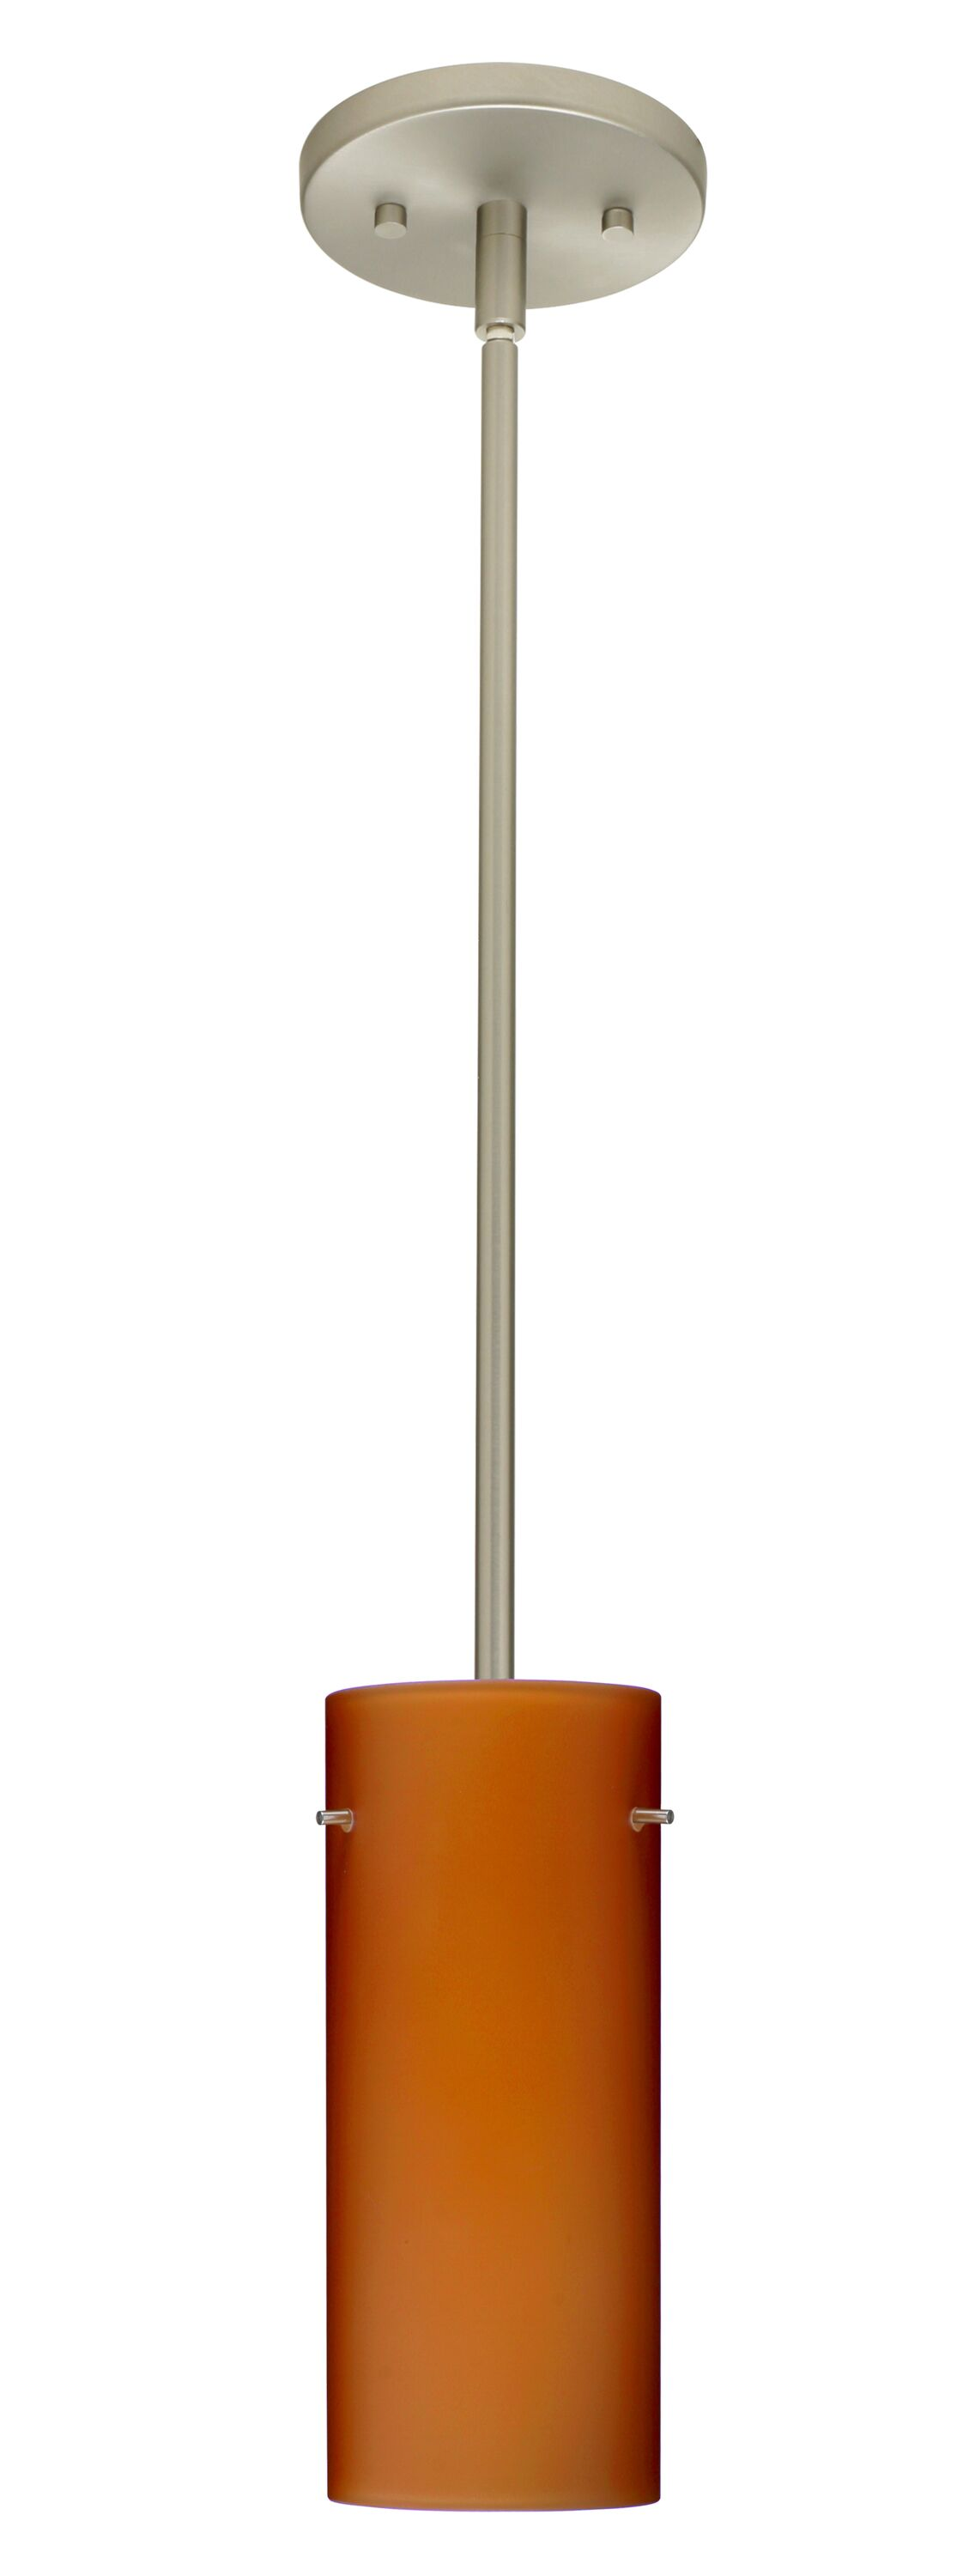 Stilo 1-Light Cylinder Pendant Finish: Satin Nickel, Glass Shade: Amber Matte, Bulb Type: Incandescent